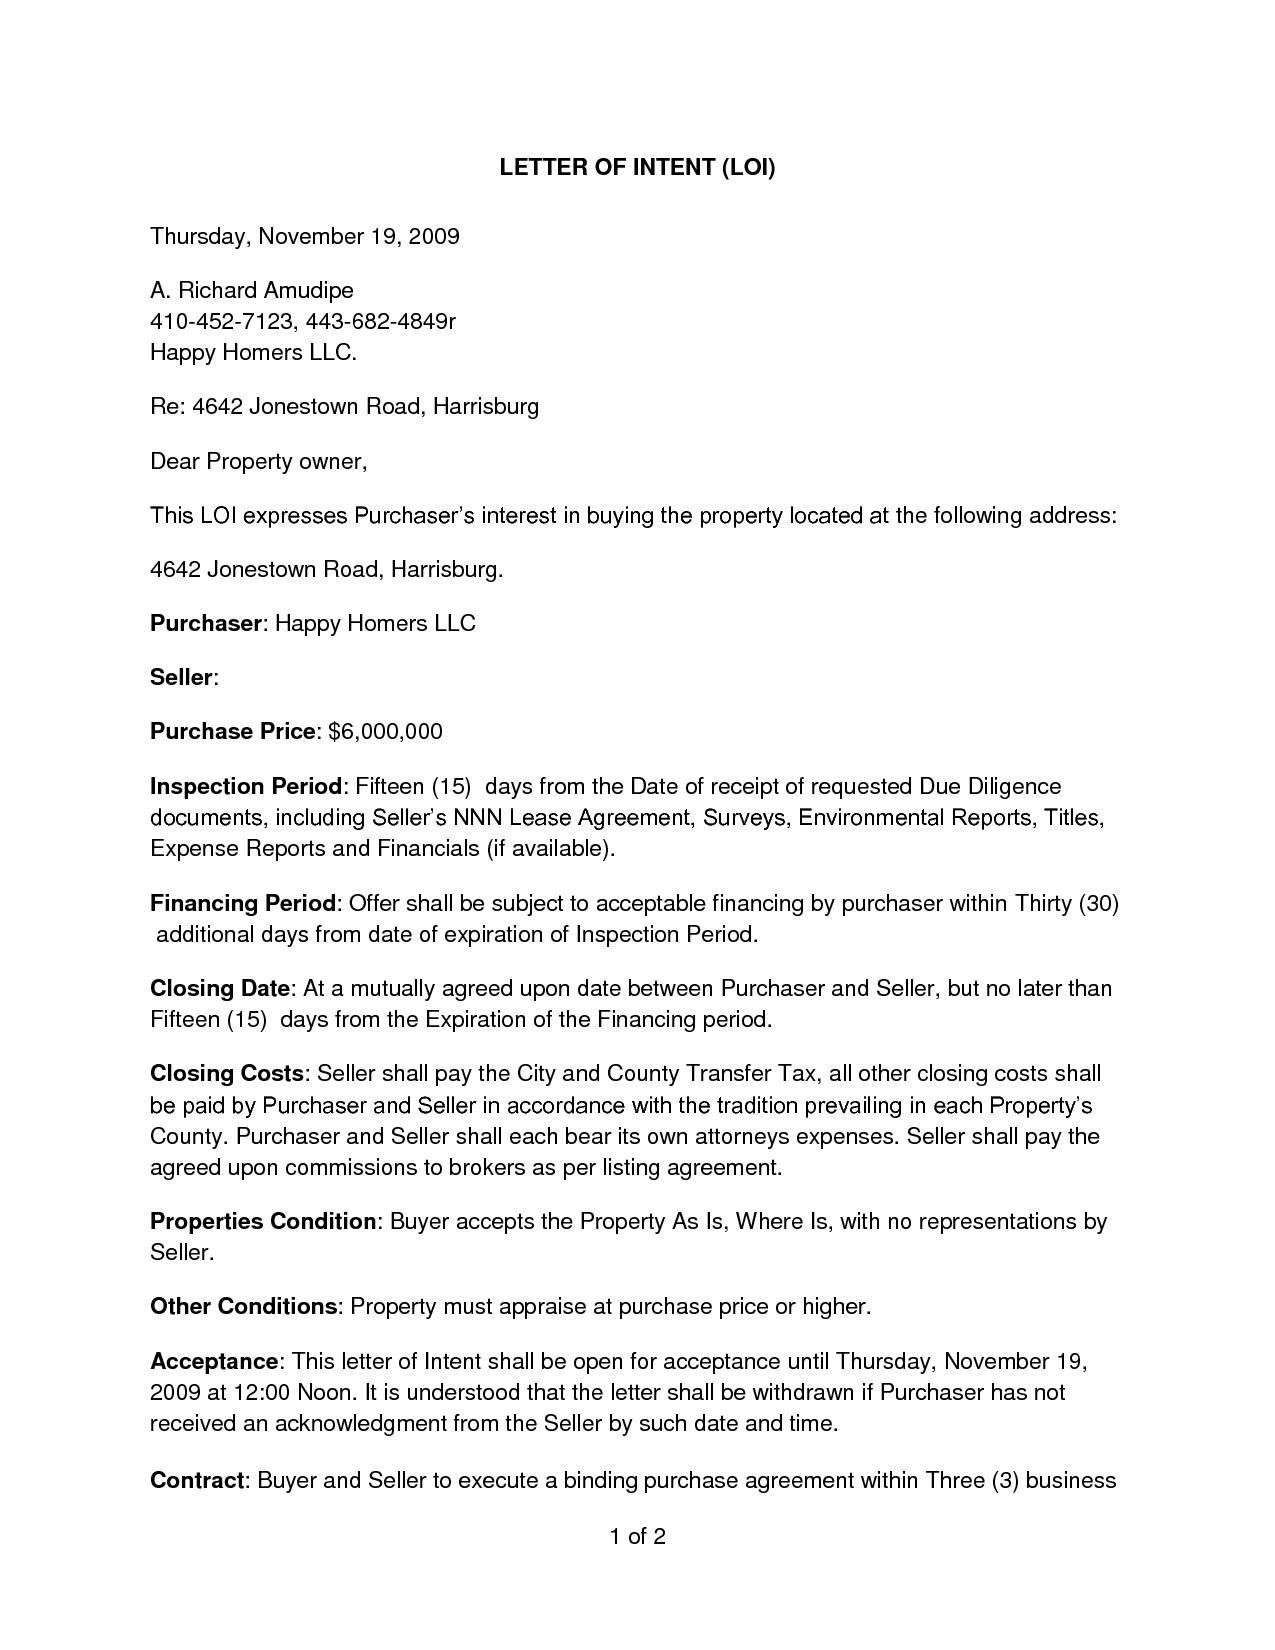 21 Business Buy Sell Agreement Template Letter Intent Template For Real Estate Luxury E Week Letter Of Intent Letter Templates Lettering